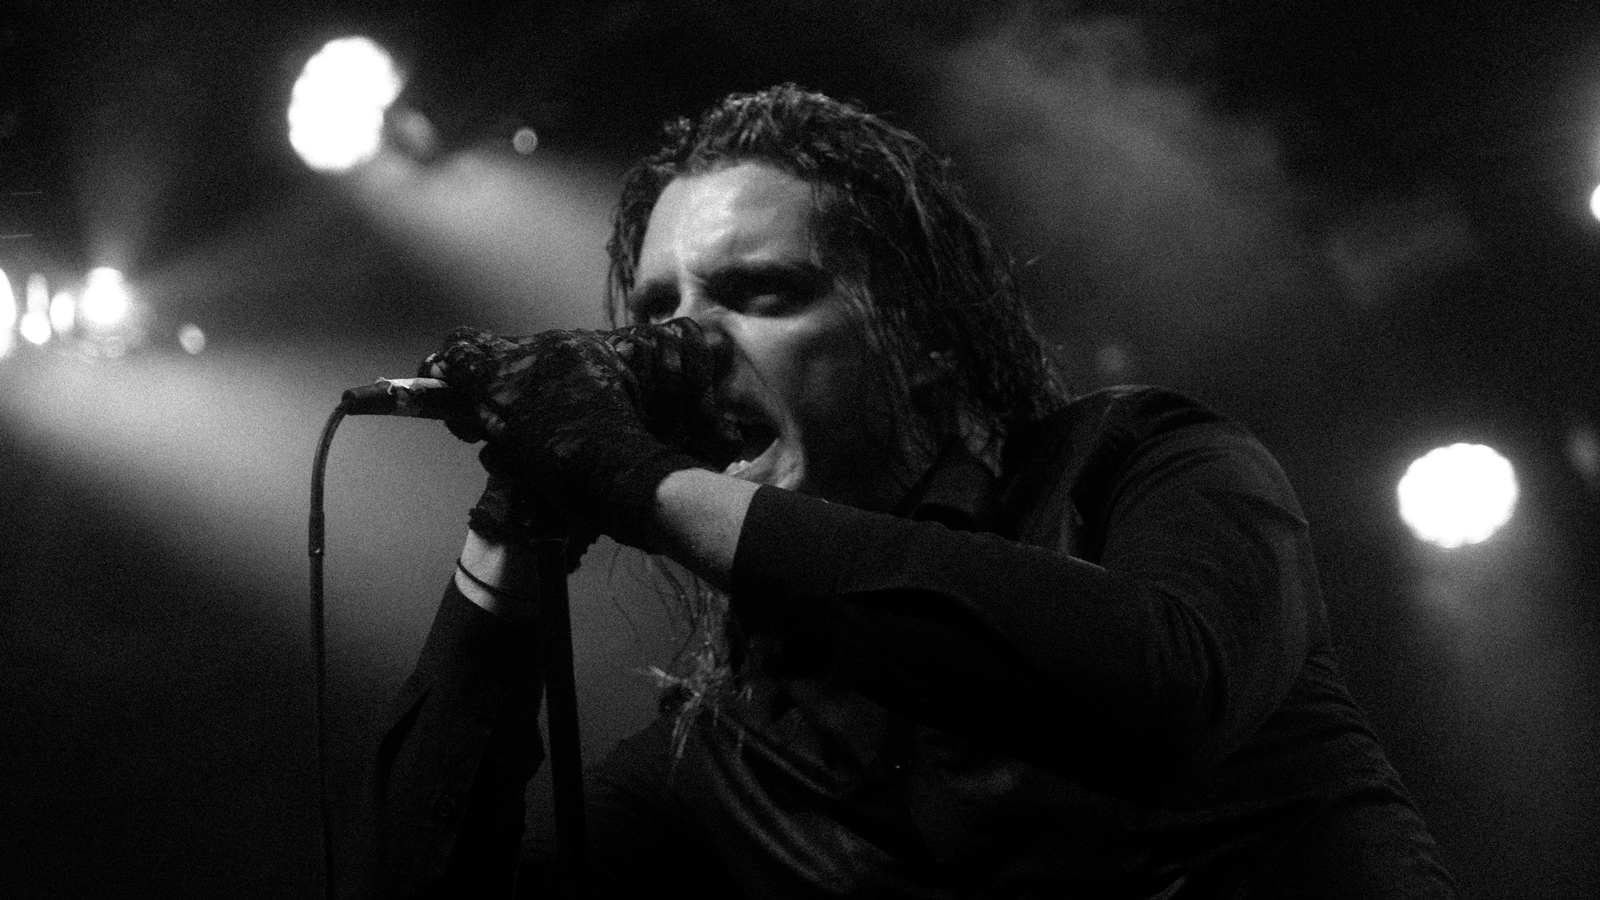 Deafheaven Announce 10th Anniversary Tour With Inter Arma, More